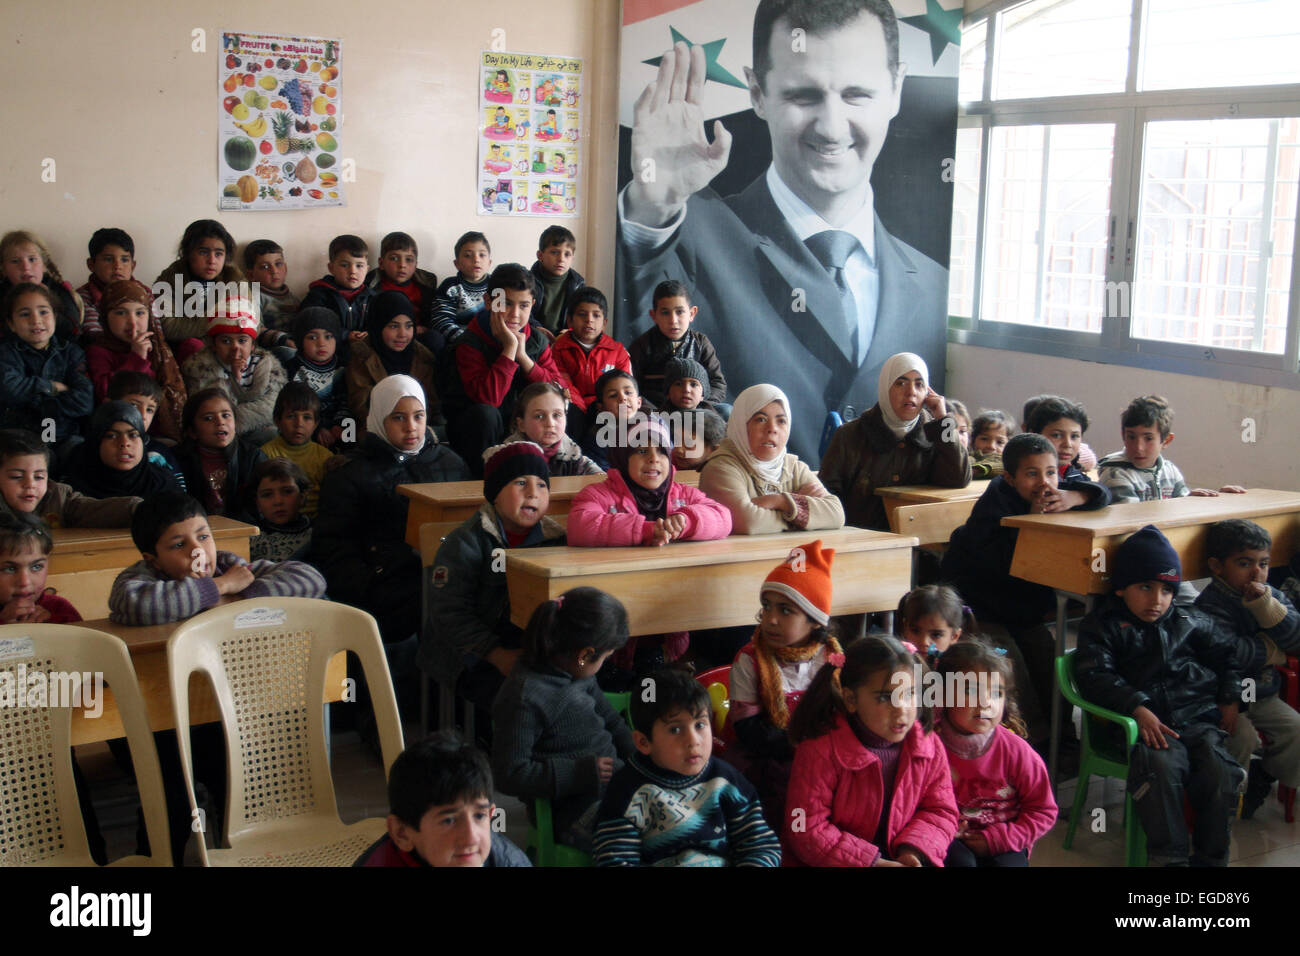 Damascus. 23rd Feb, 2015. Displaced Syrian children are seen at a school that has been turned into a temporary shelter - Stock Image